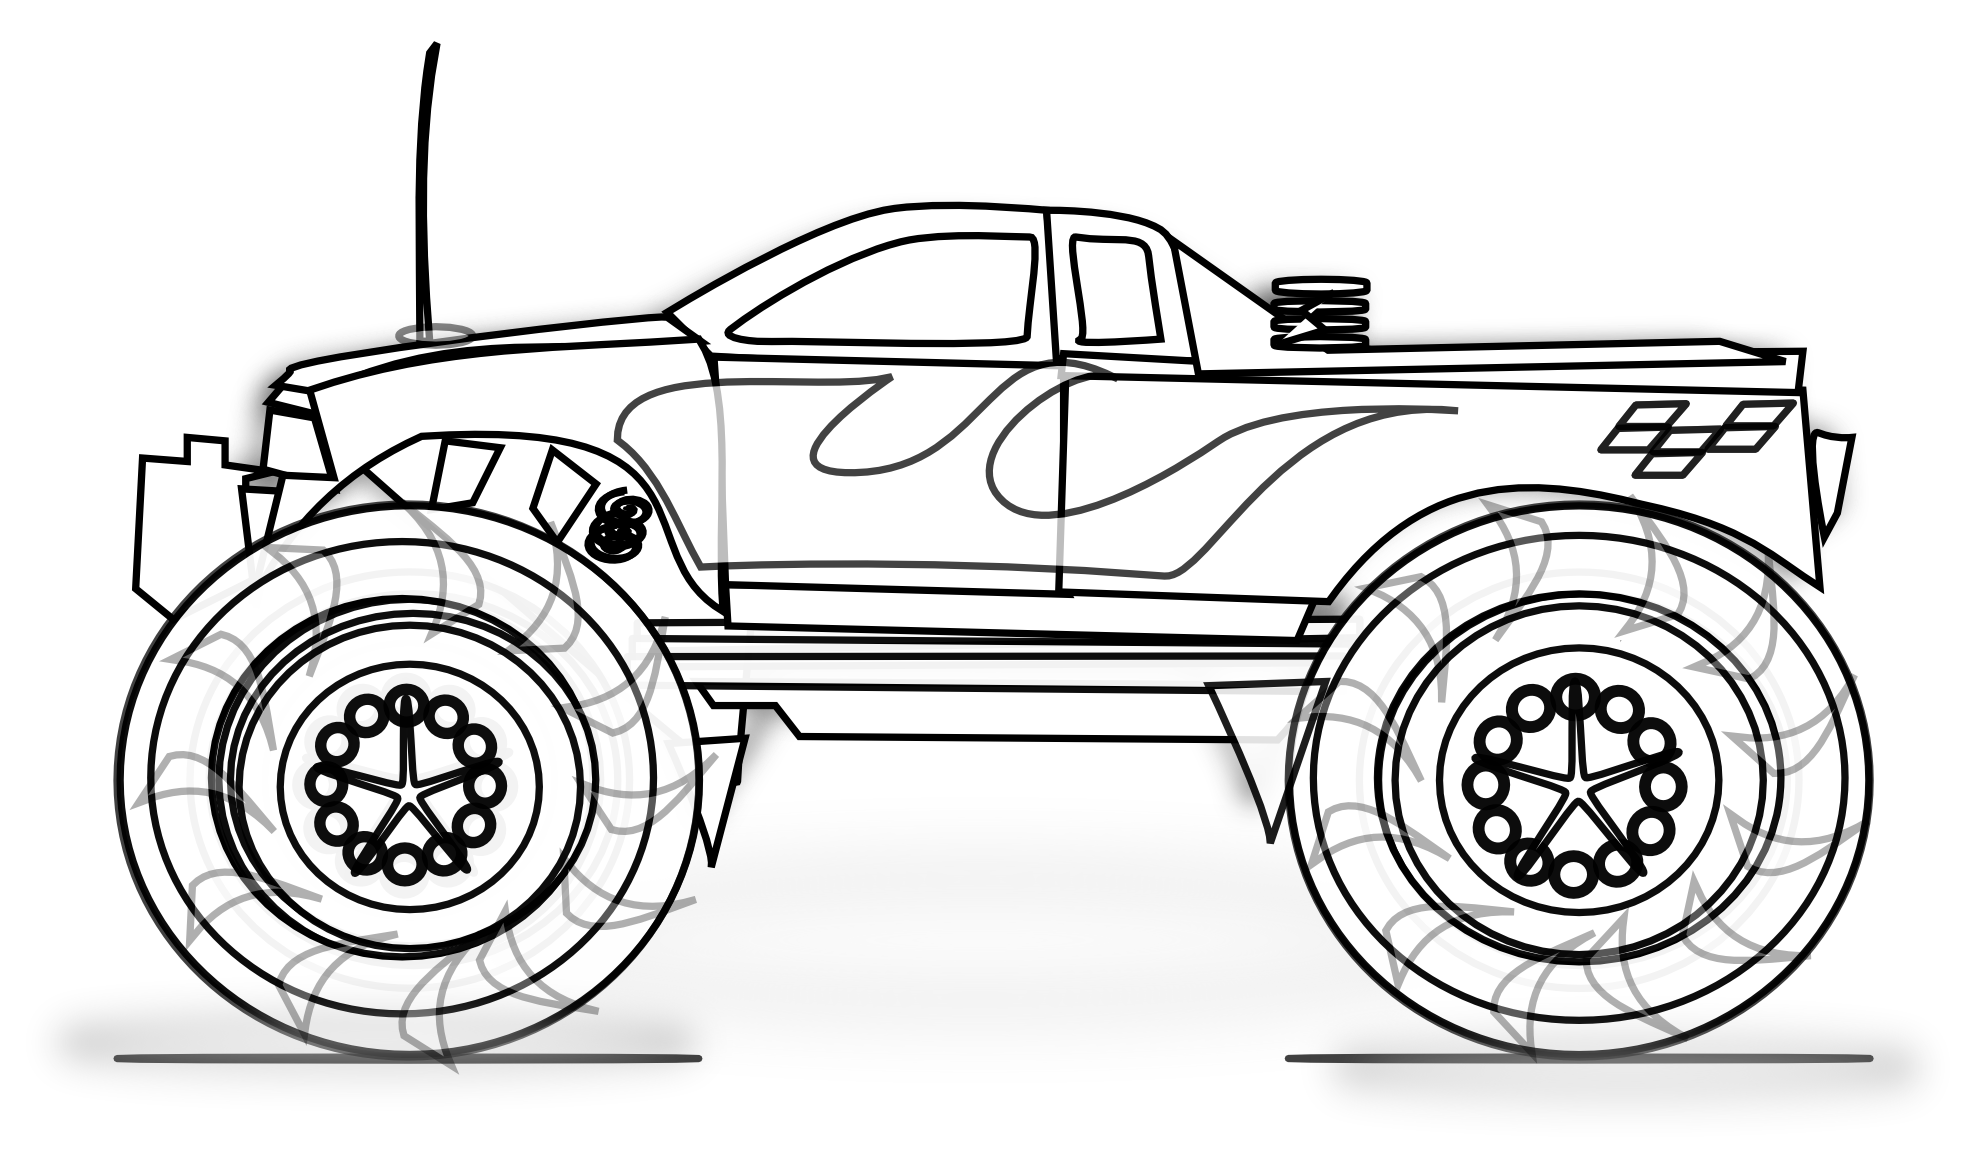 monster truck printable coloring pages - Color Printable Pages